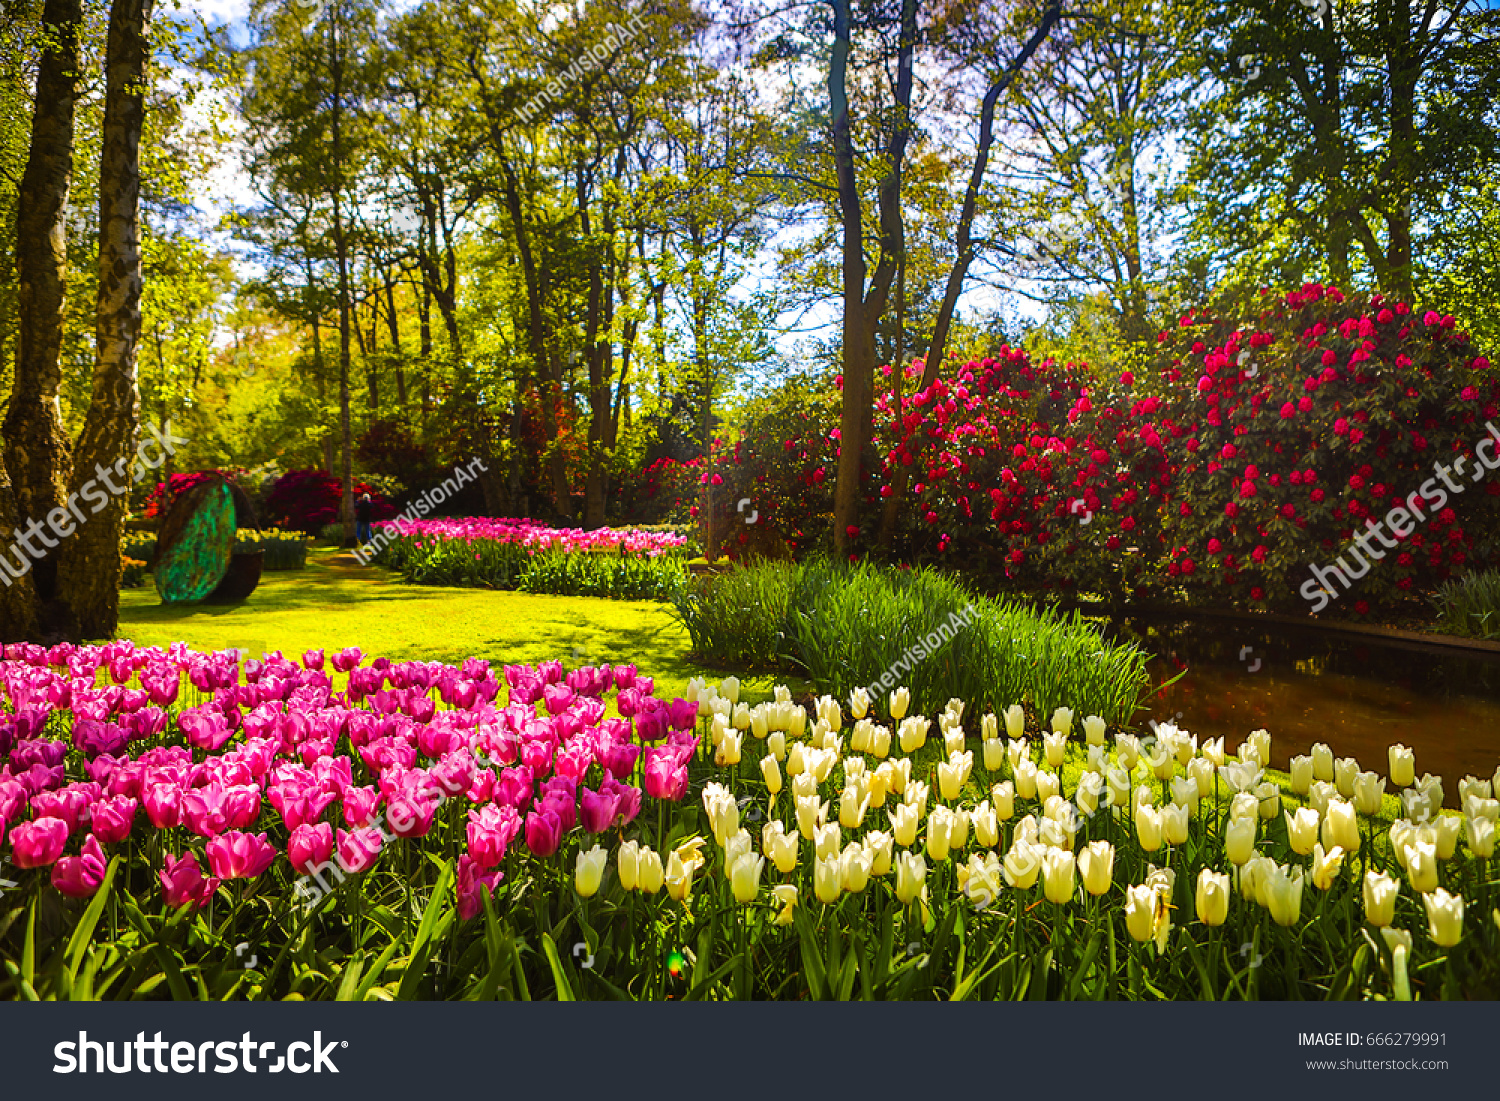 Blooming Summer Garden Beautiful Flowers Park Stock Photo Edit Now